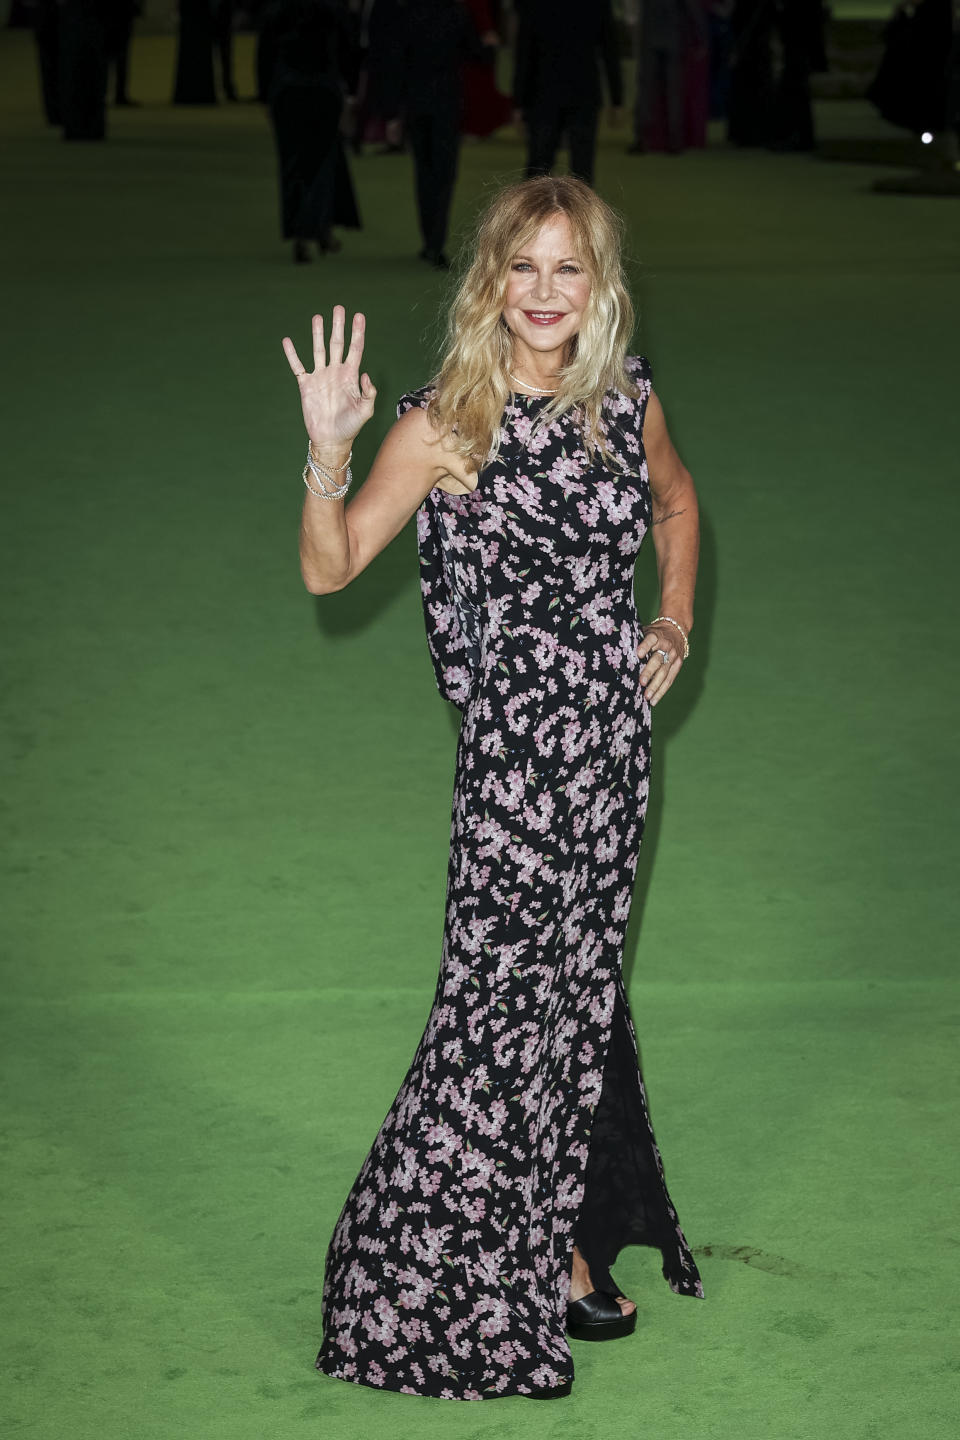 Los Angeles, CA - September 25: Meg Ryan on the green carpet of the Opening Gala for the Academy Museum of Motion Pictures, in Los Angeles, CA, Saturday, Sept. 25, 2021. (Jay L. Clendenin / Los Angeles Times via Getty Images)